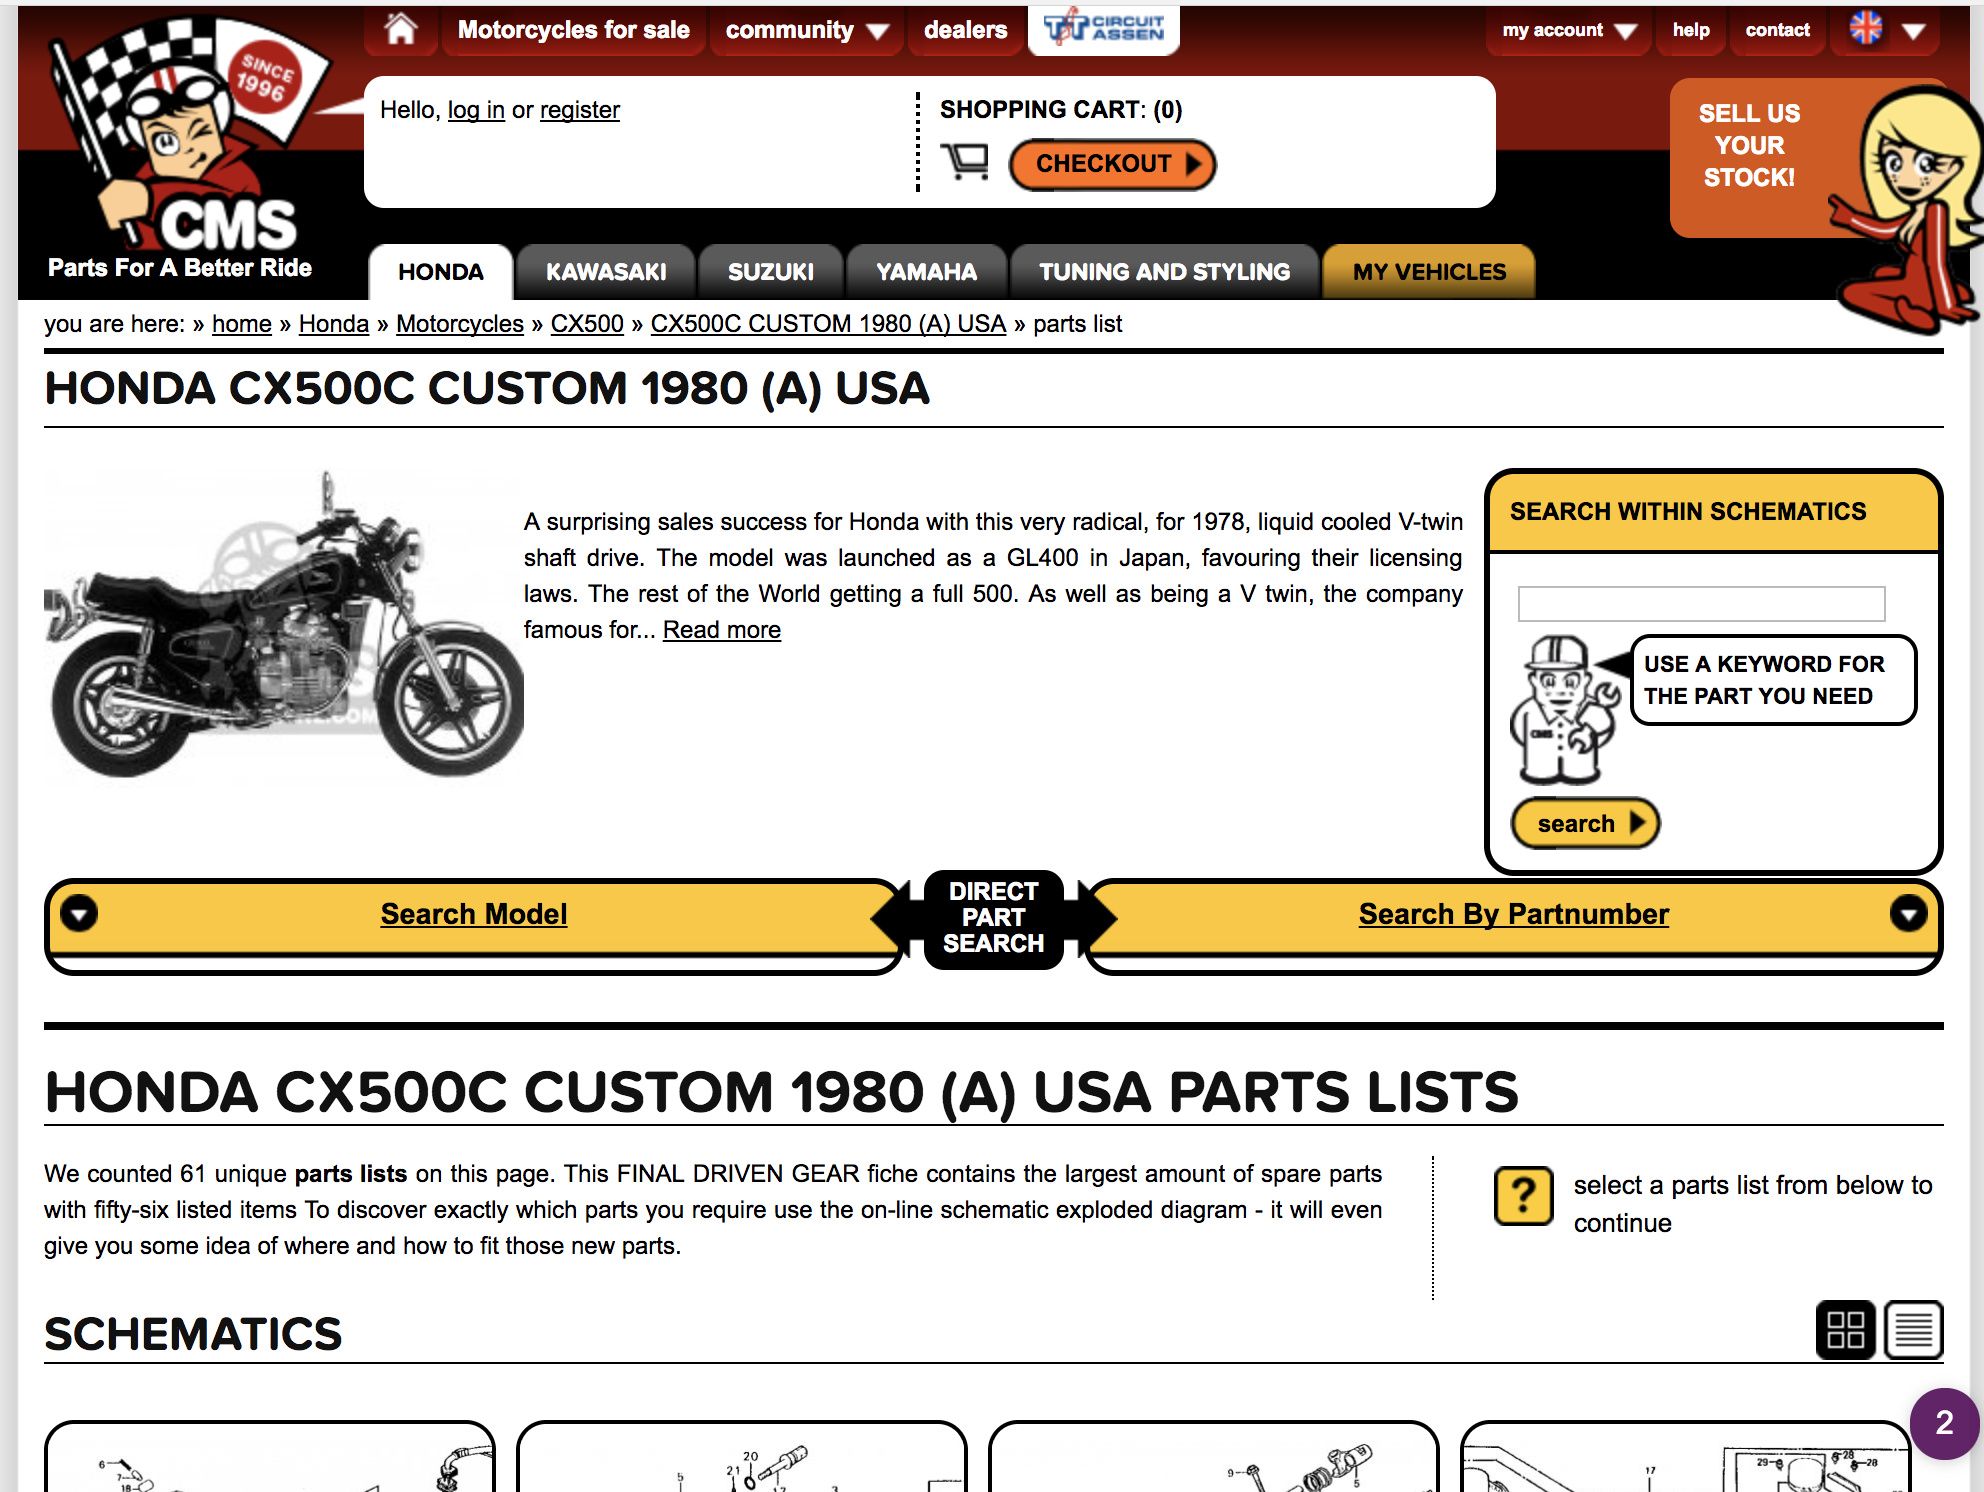 How to identify and find parts and part numbers for your motorcycle